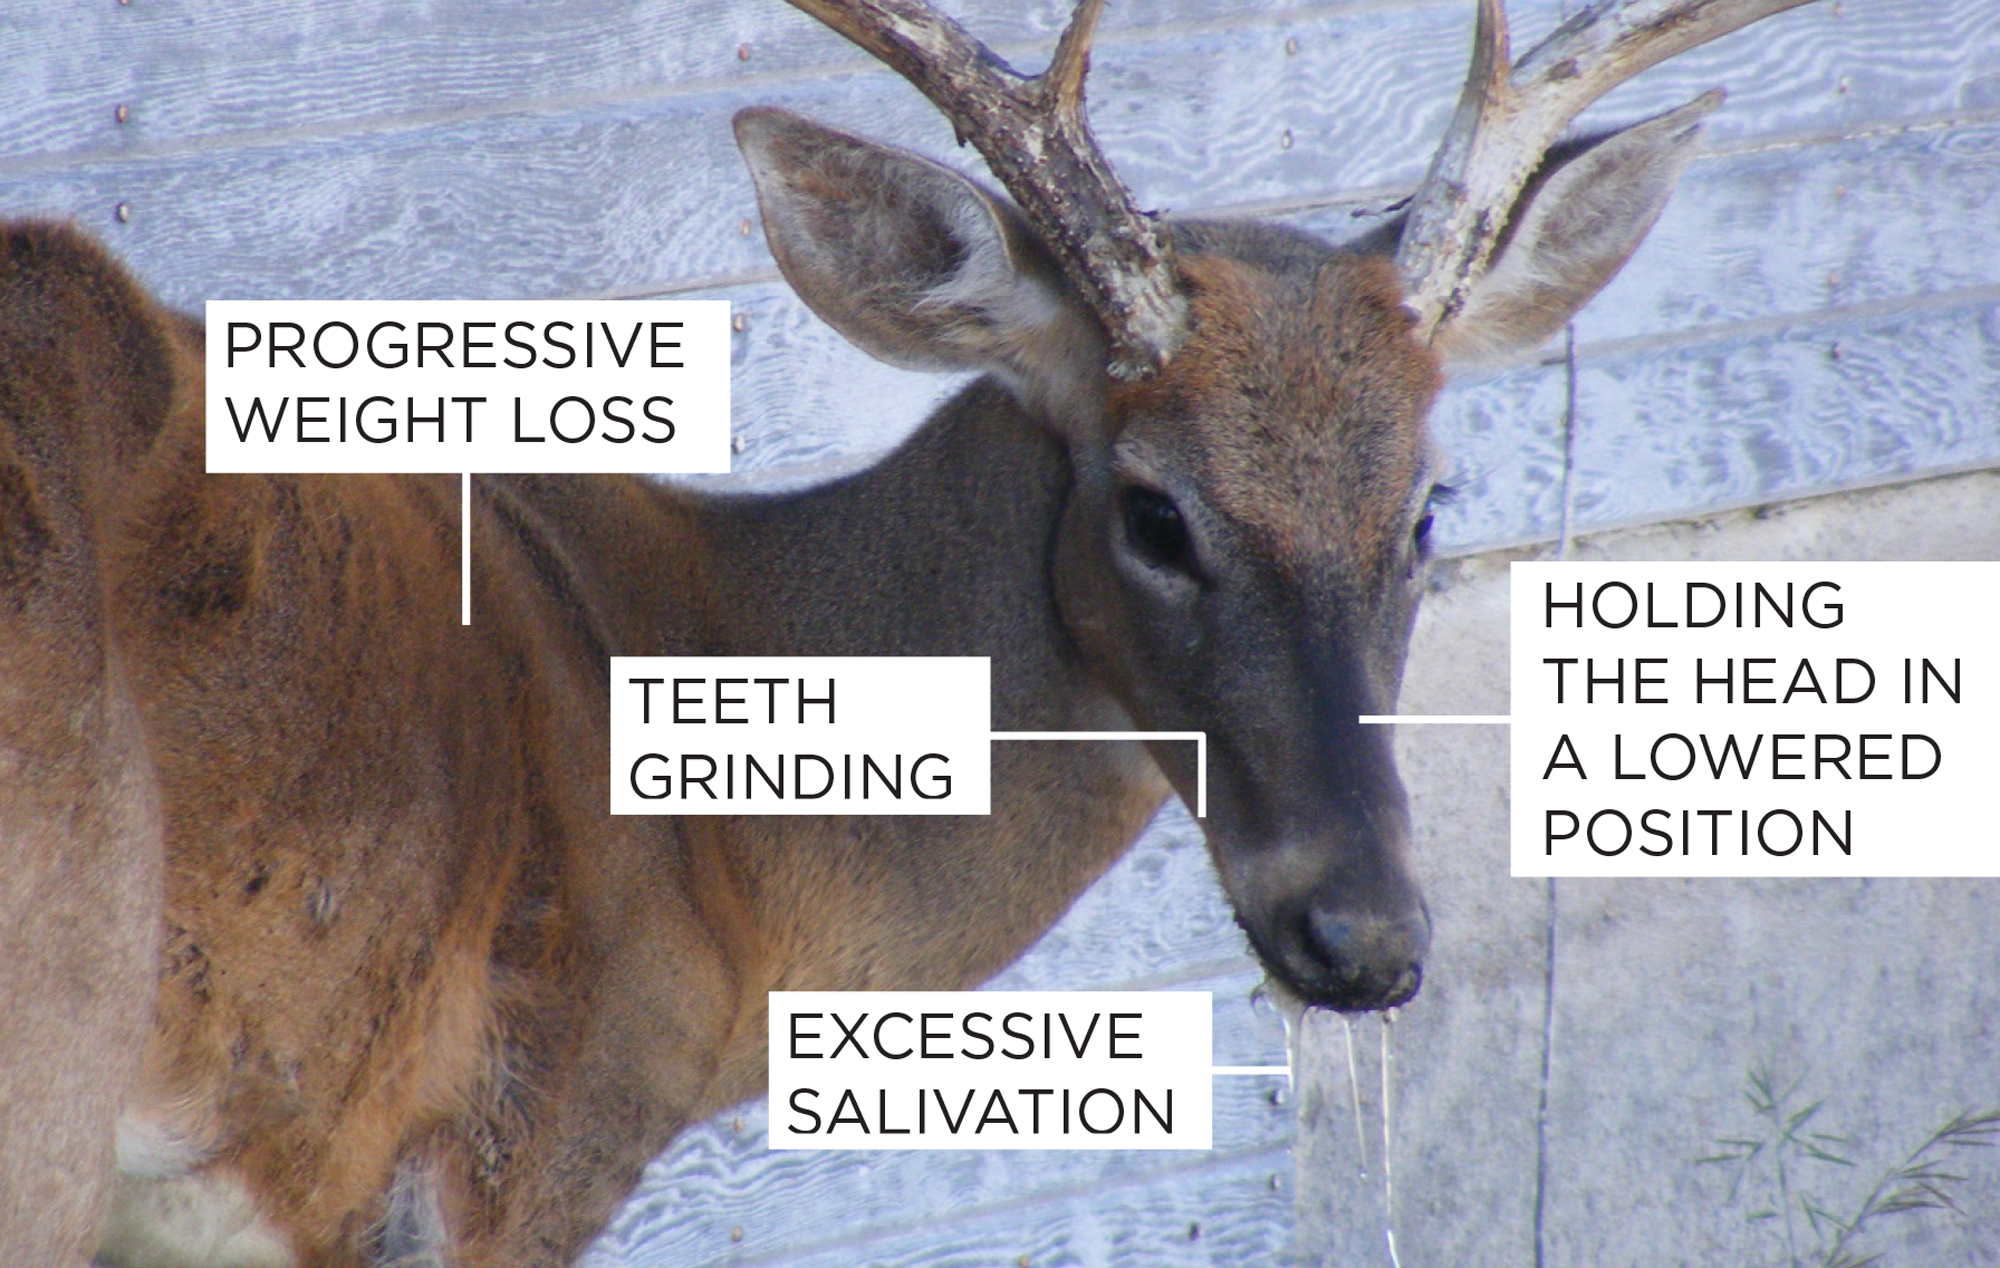 Infographic showing commons signs and symptoms of Chronic Wasting Disease